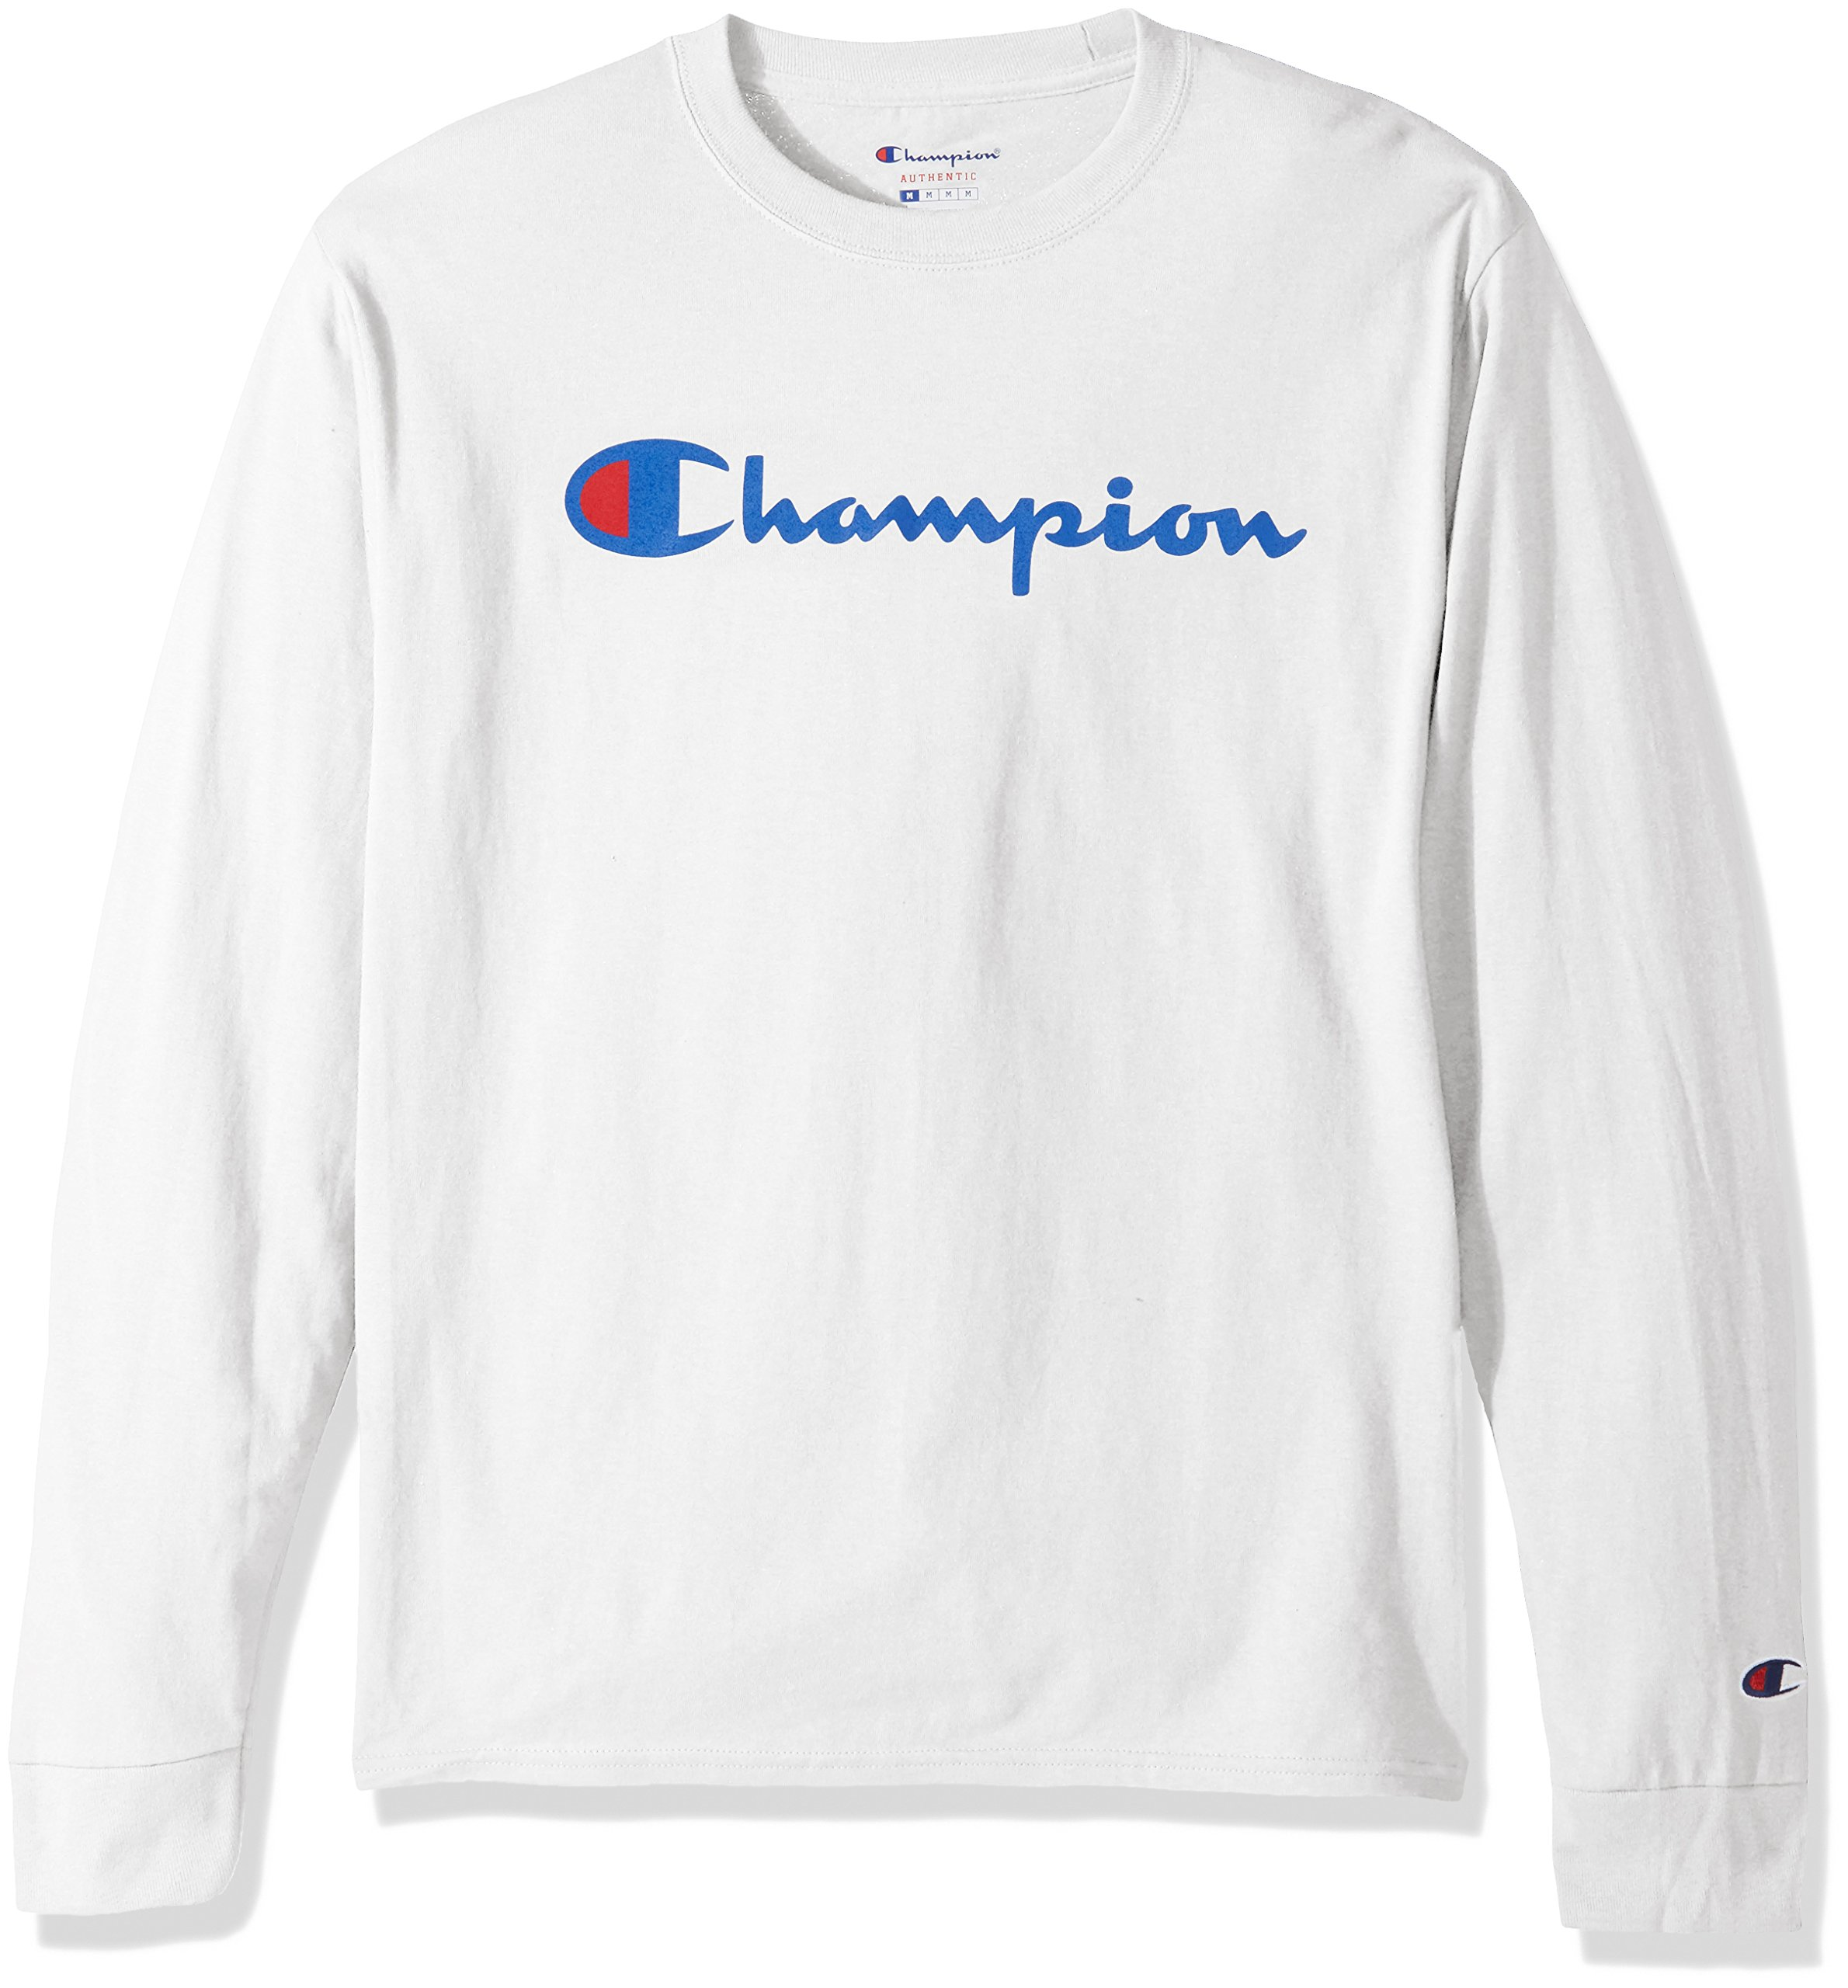 Champion LIFE Men's Cotton Long Sleeve Tee, White/Patriotic Script, Medium by Champion LIFE